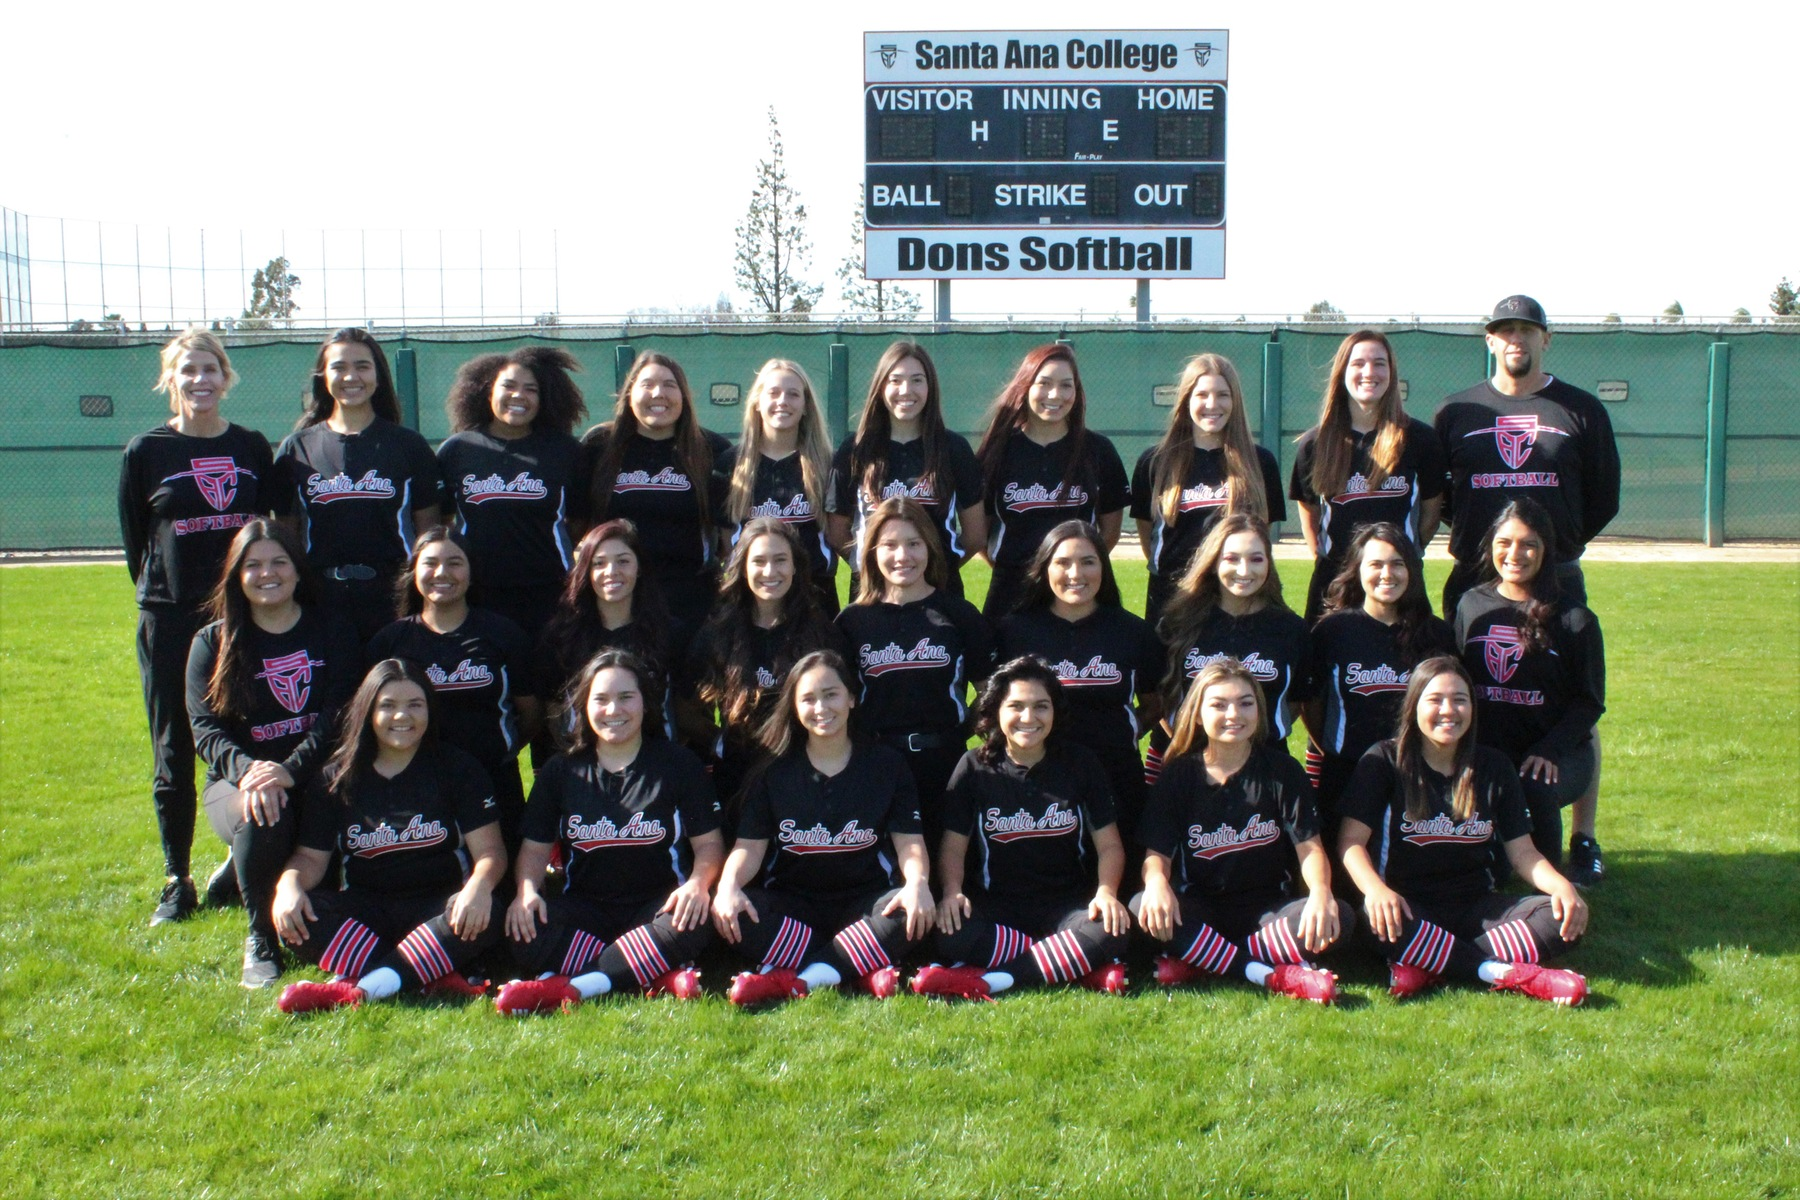 SAC Softball Seeded 11th, Will Travel to Antelope Valley for CCCAA Regional Playoffs